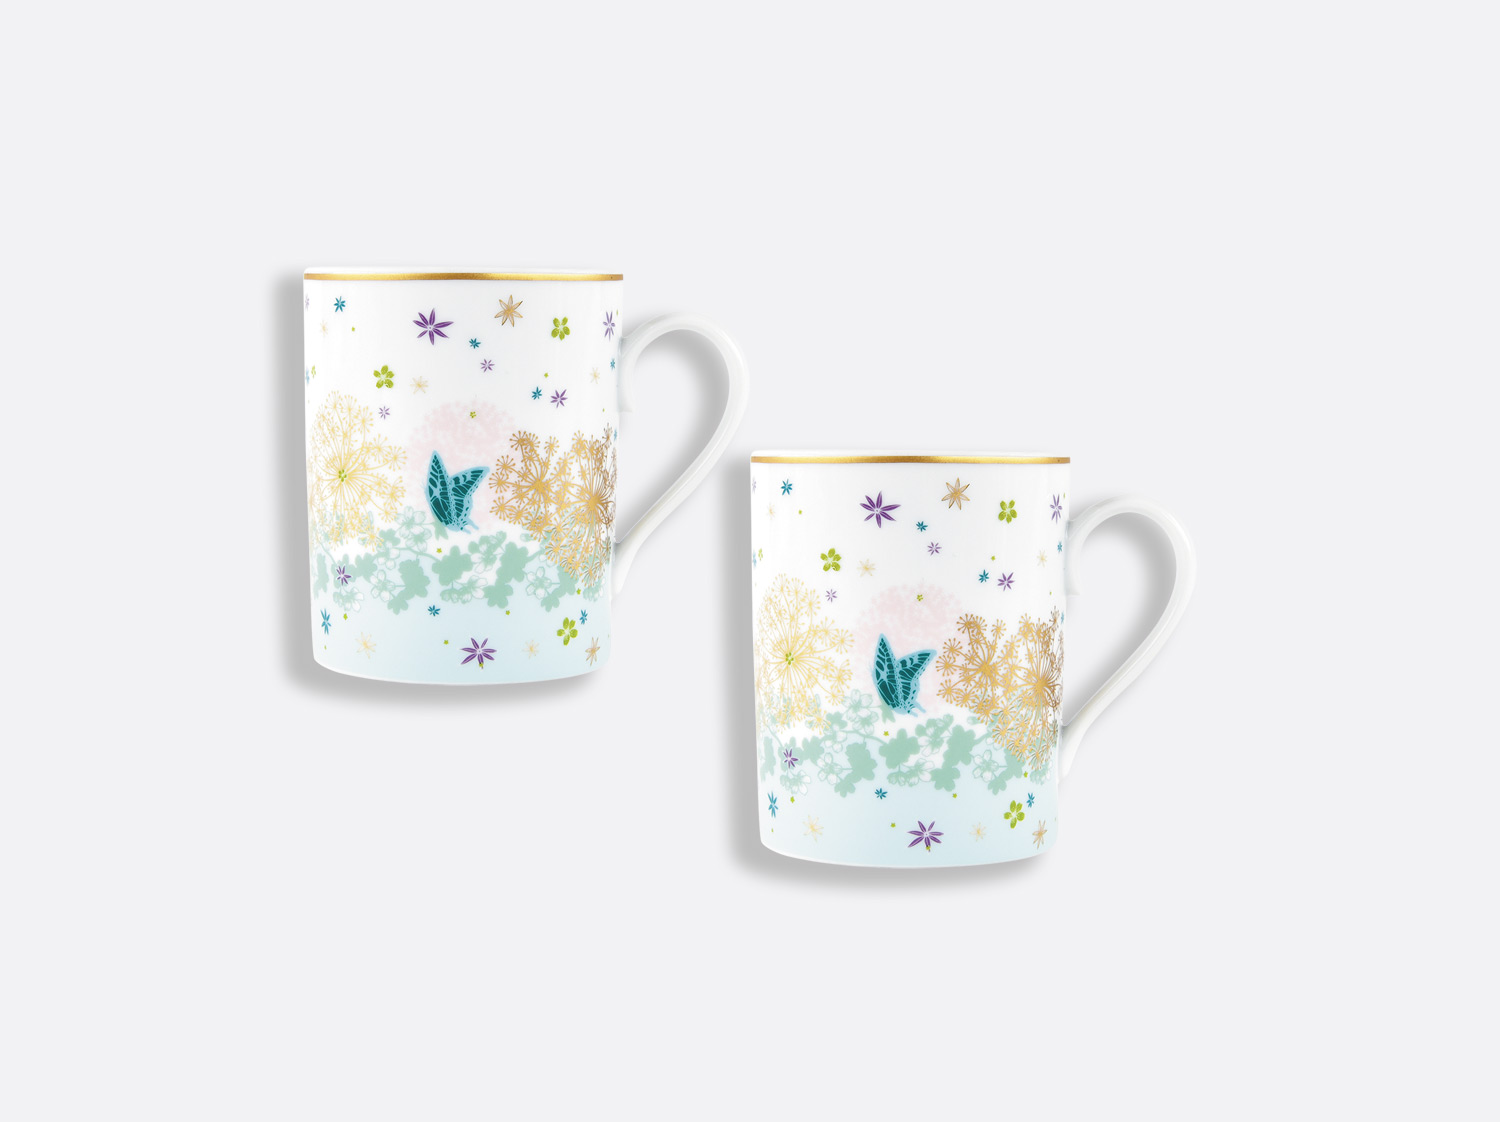 Mug 25 cl - Coffret de 2 en porcelaine de la collection FÉERIE - MICHAËL CAILLOUX Bernardaud